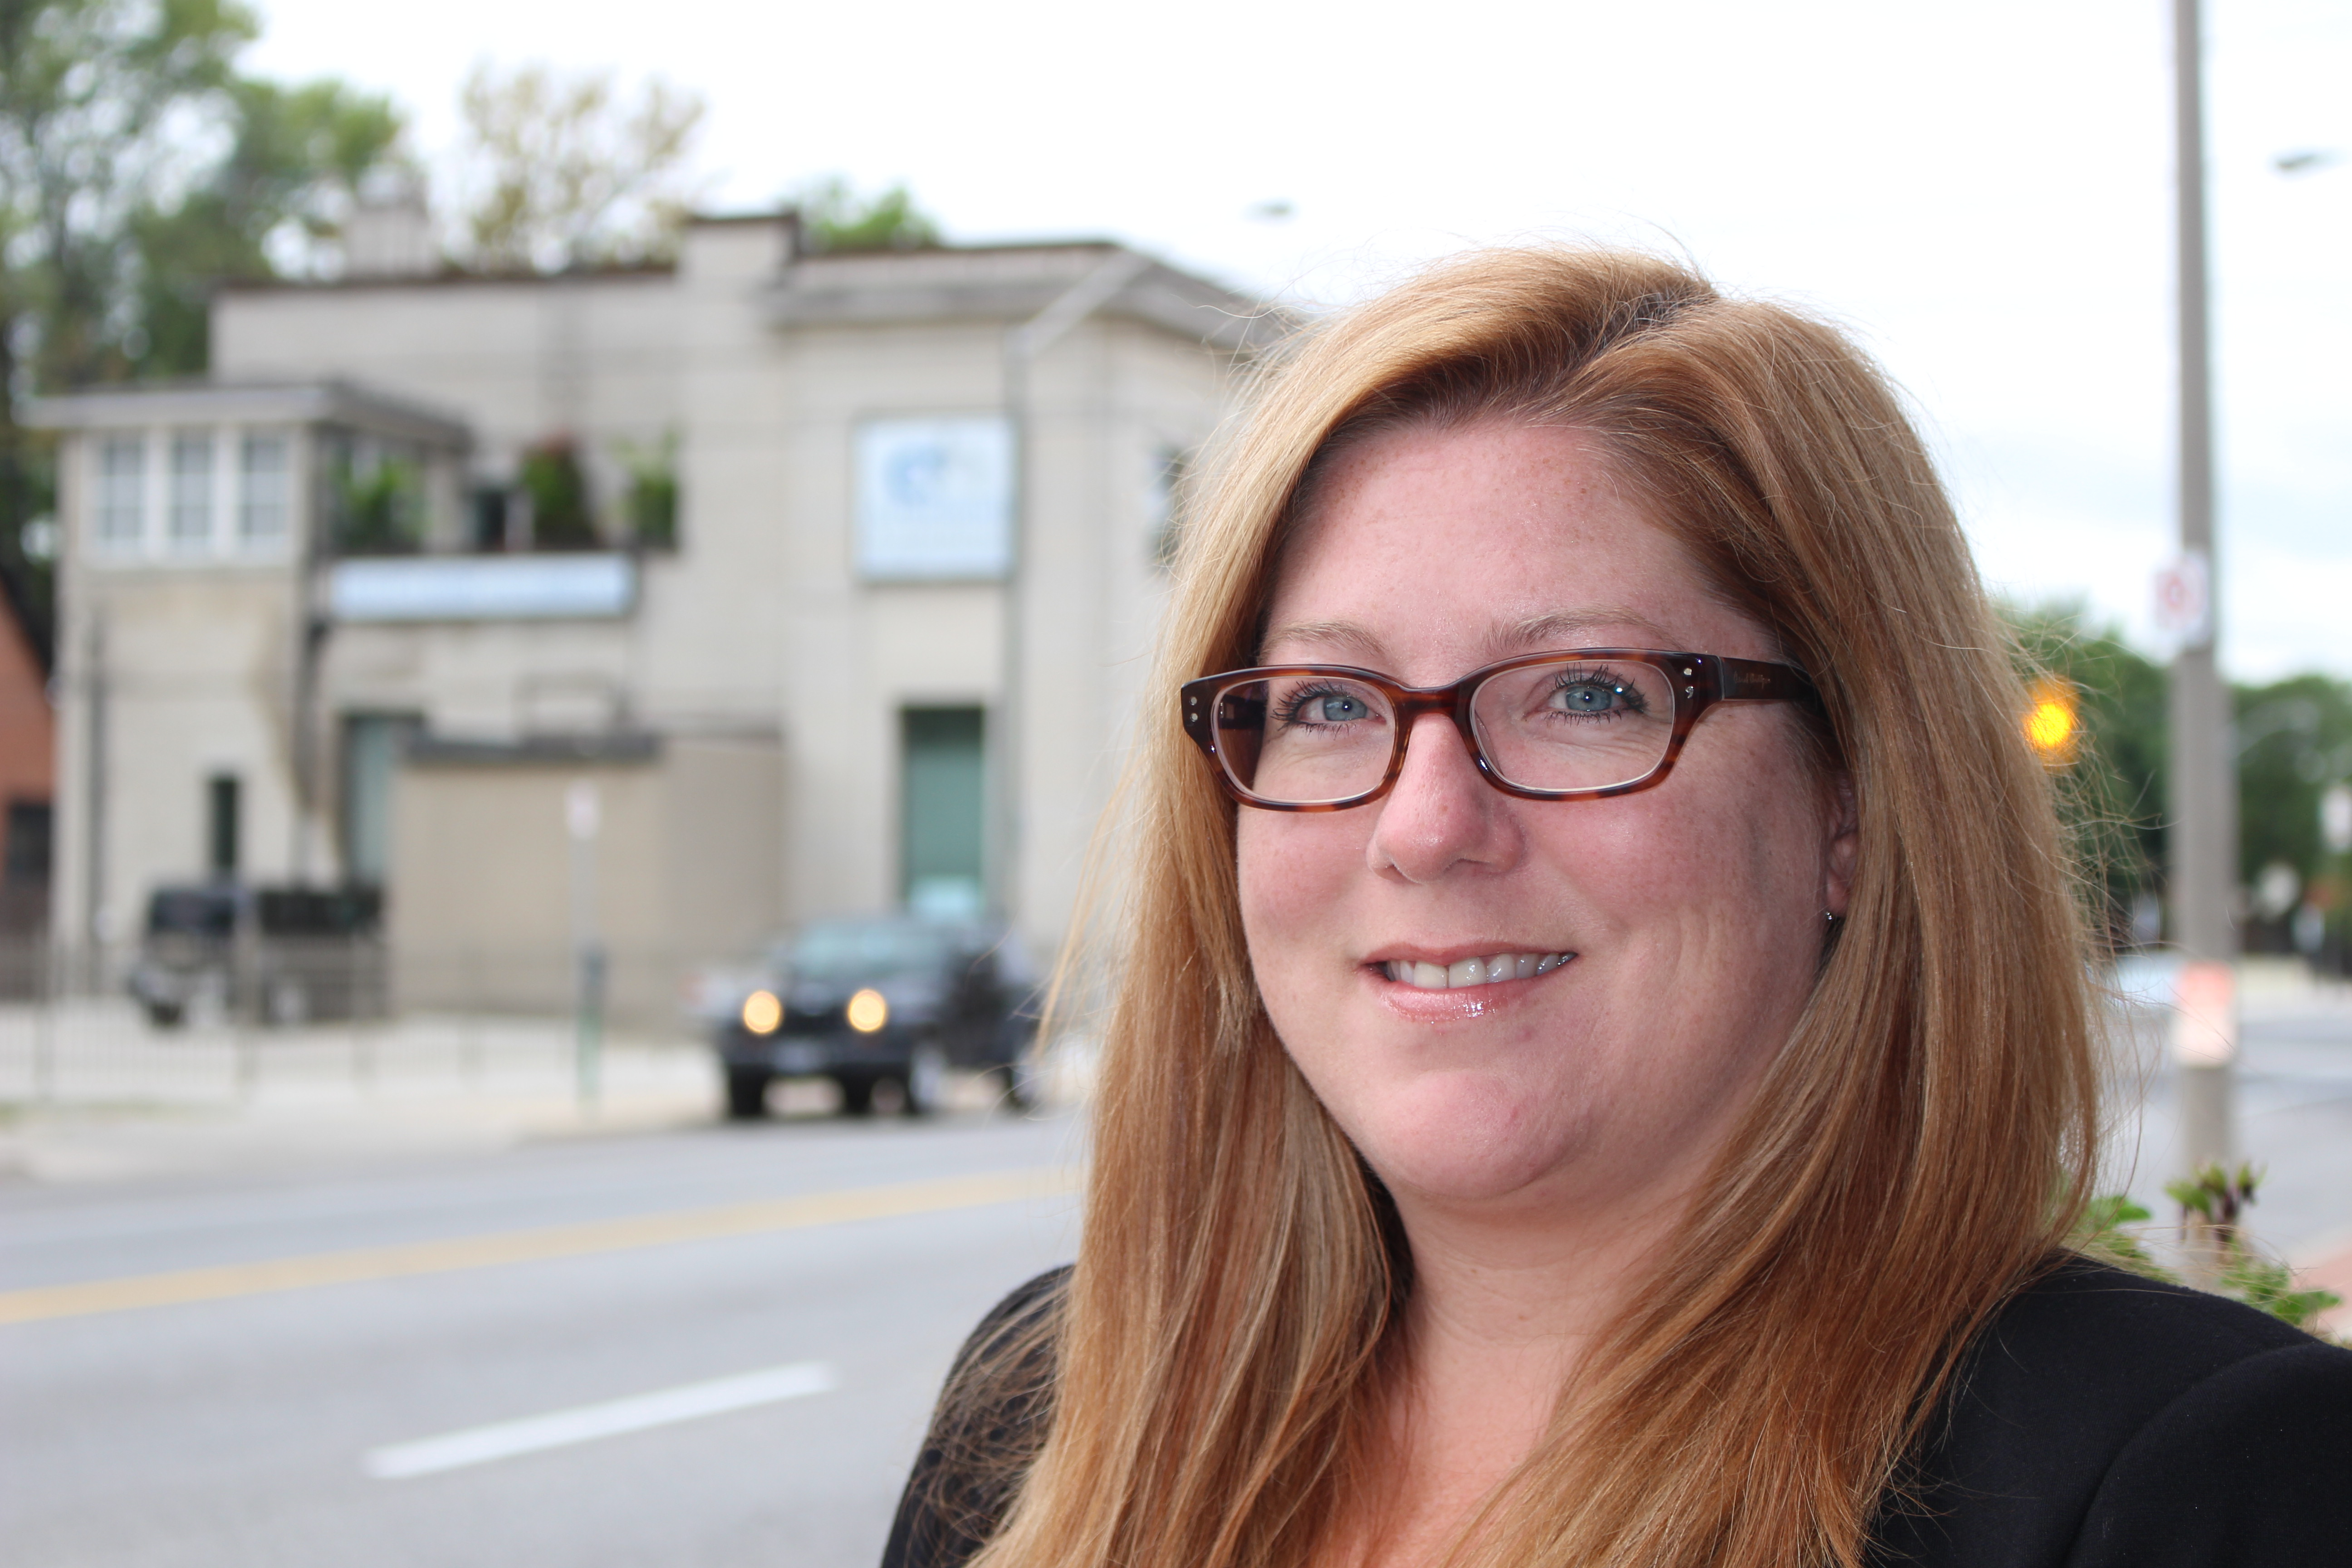 NDP candidate in the riding of Essex, Tracey Ramsey August 25, 2015. (Photo by Adelle Loiselle)